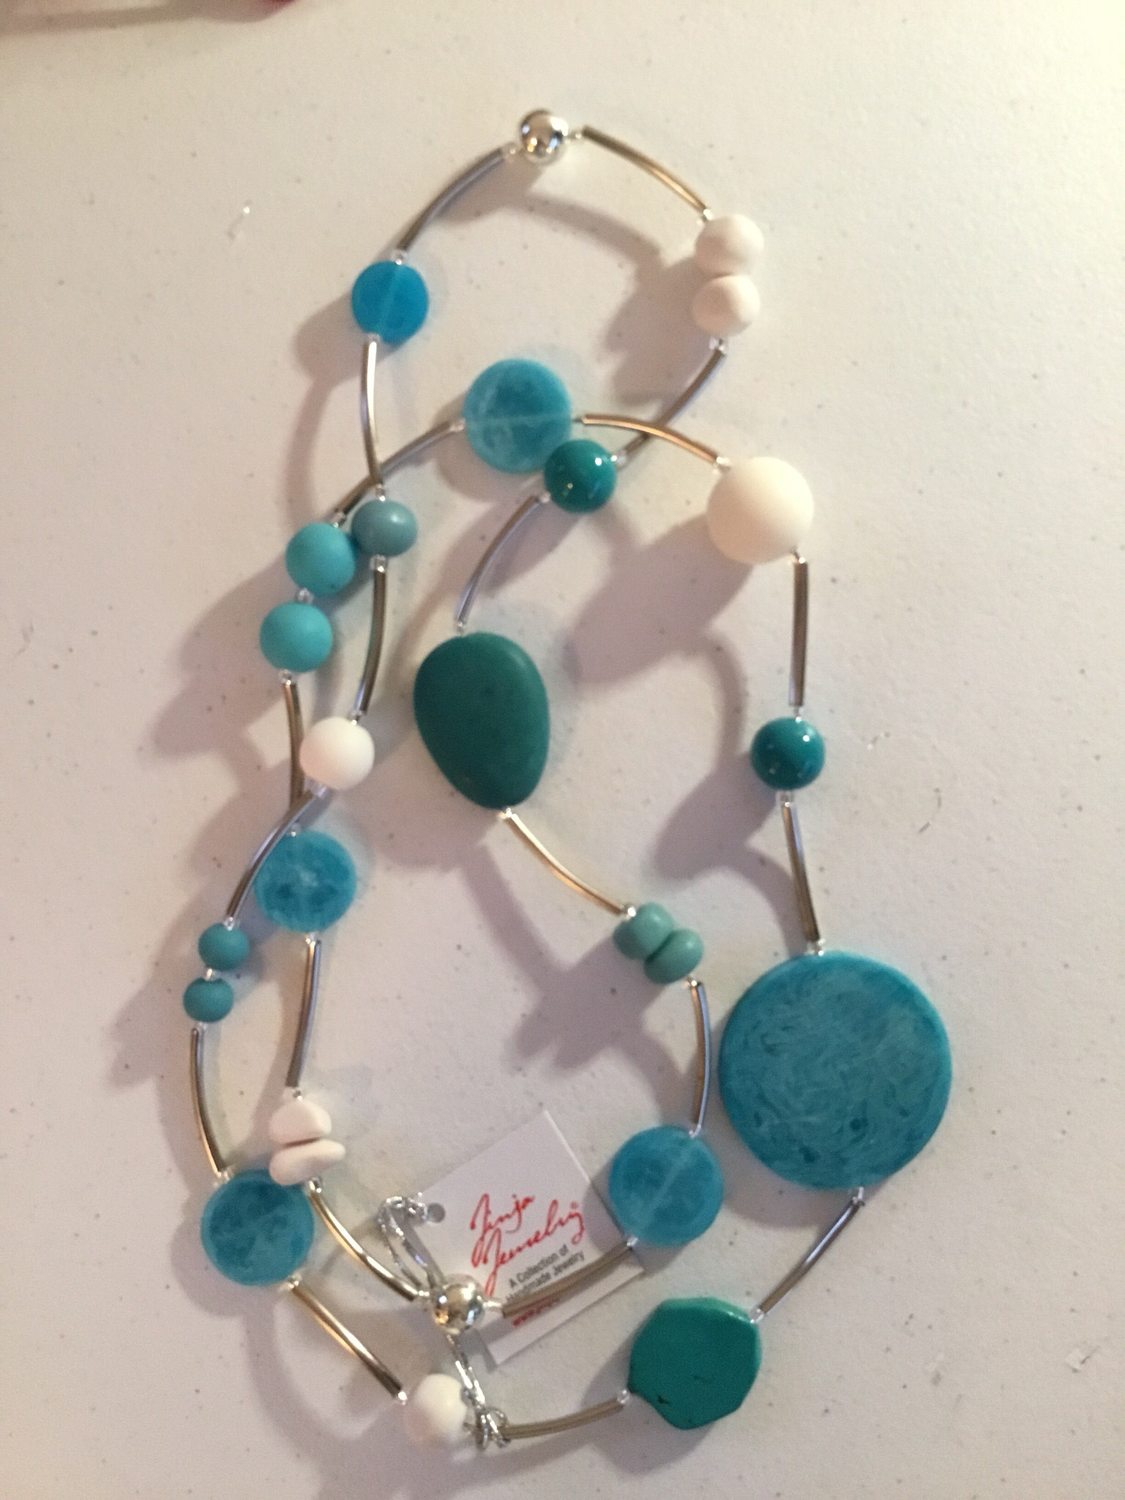 Turquoise and White Stainless Steel Long Necklace